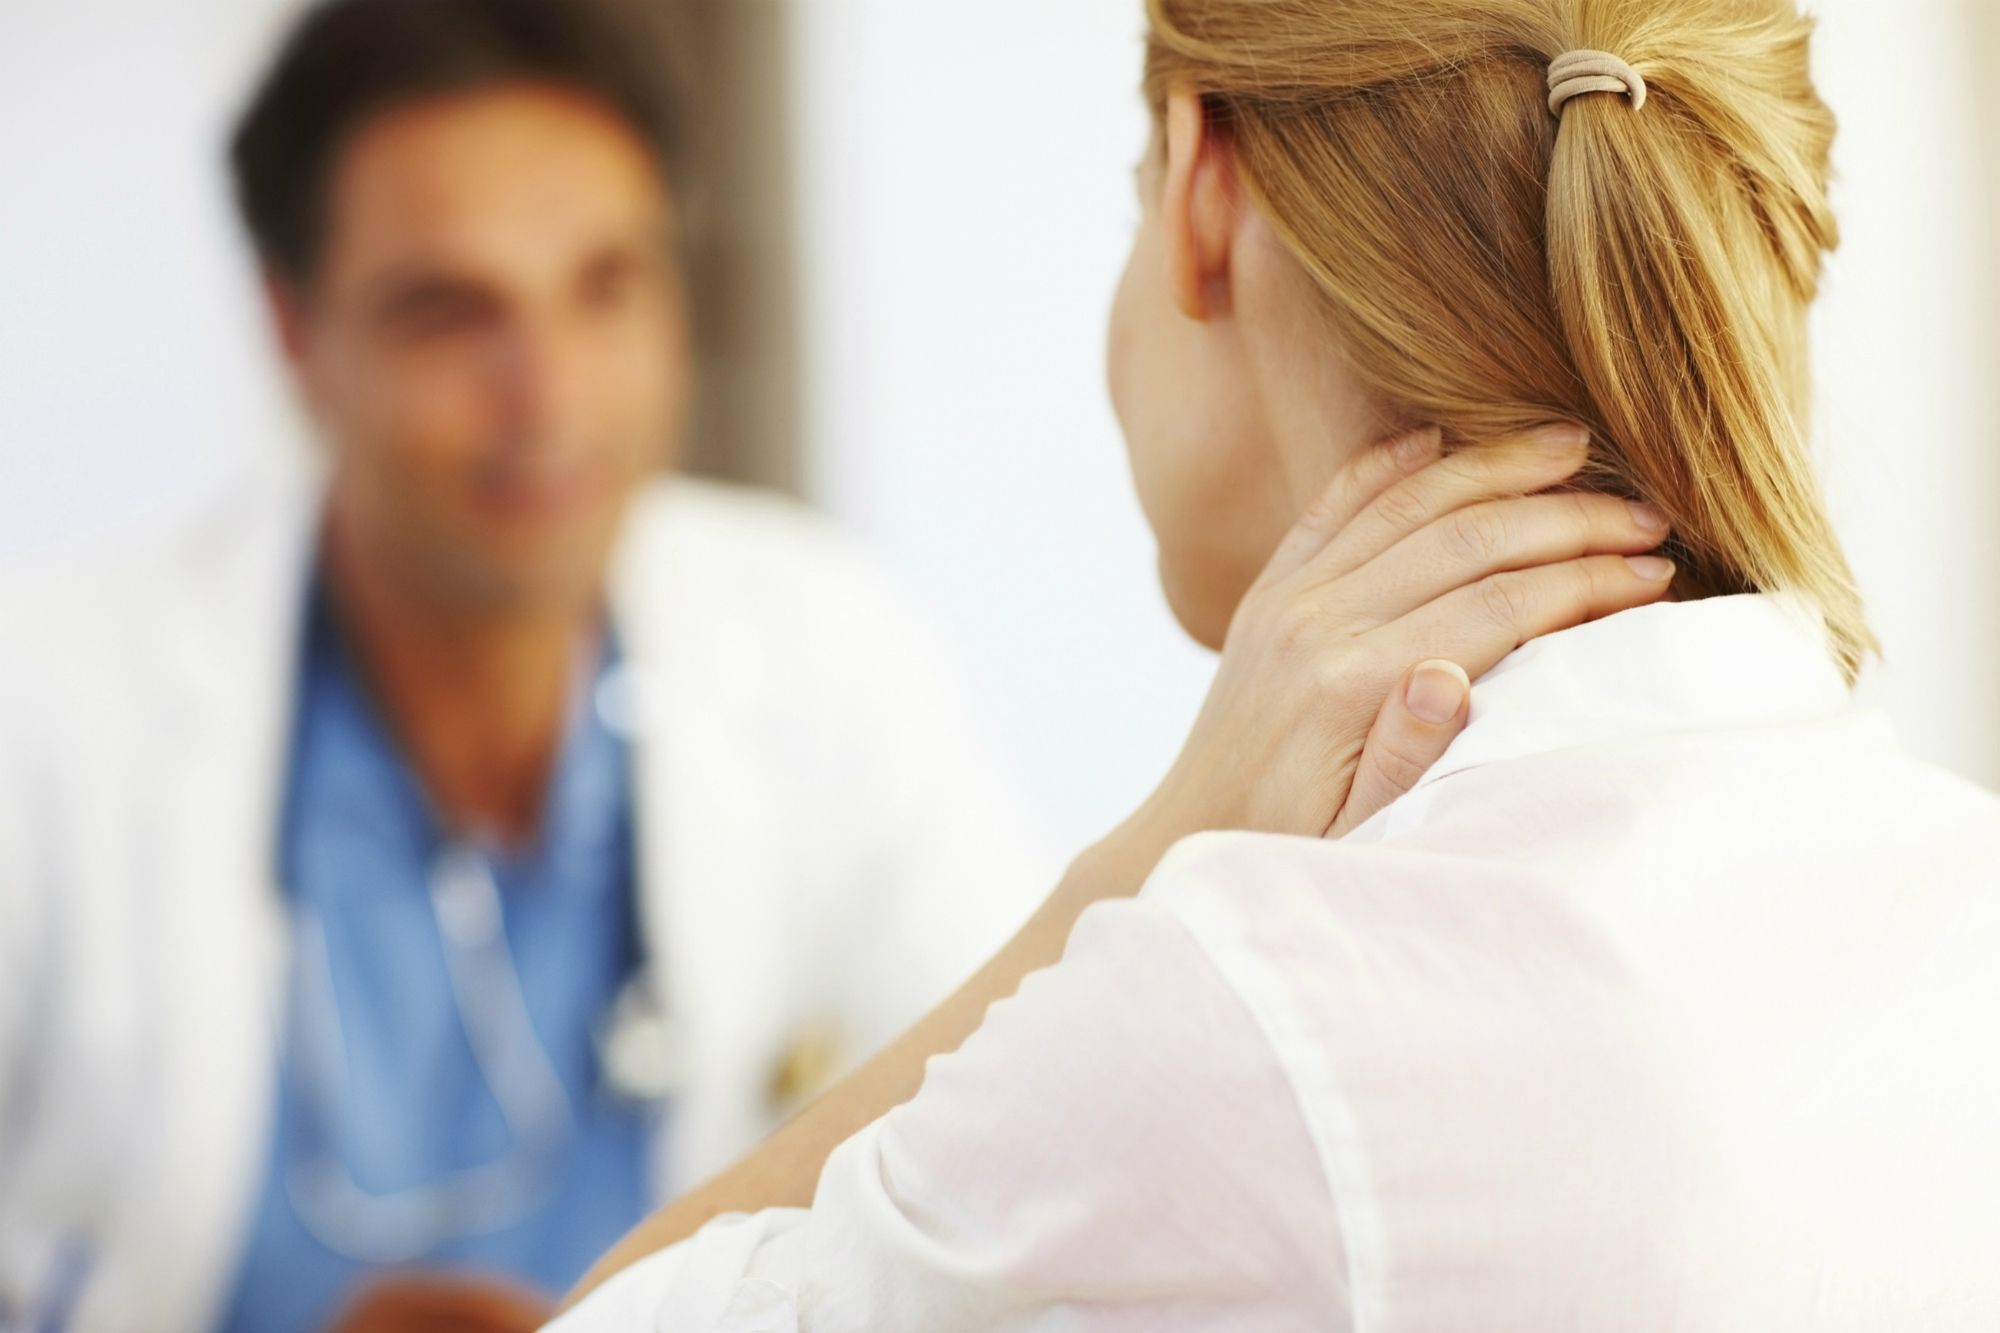 Patient discussing neck problems with doctor